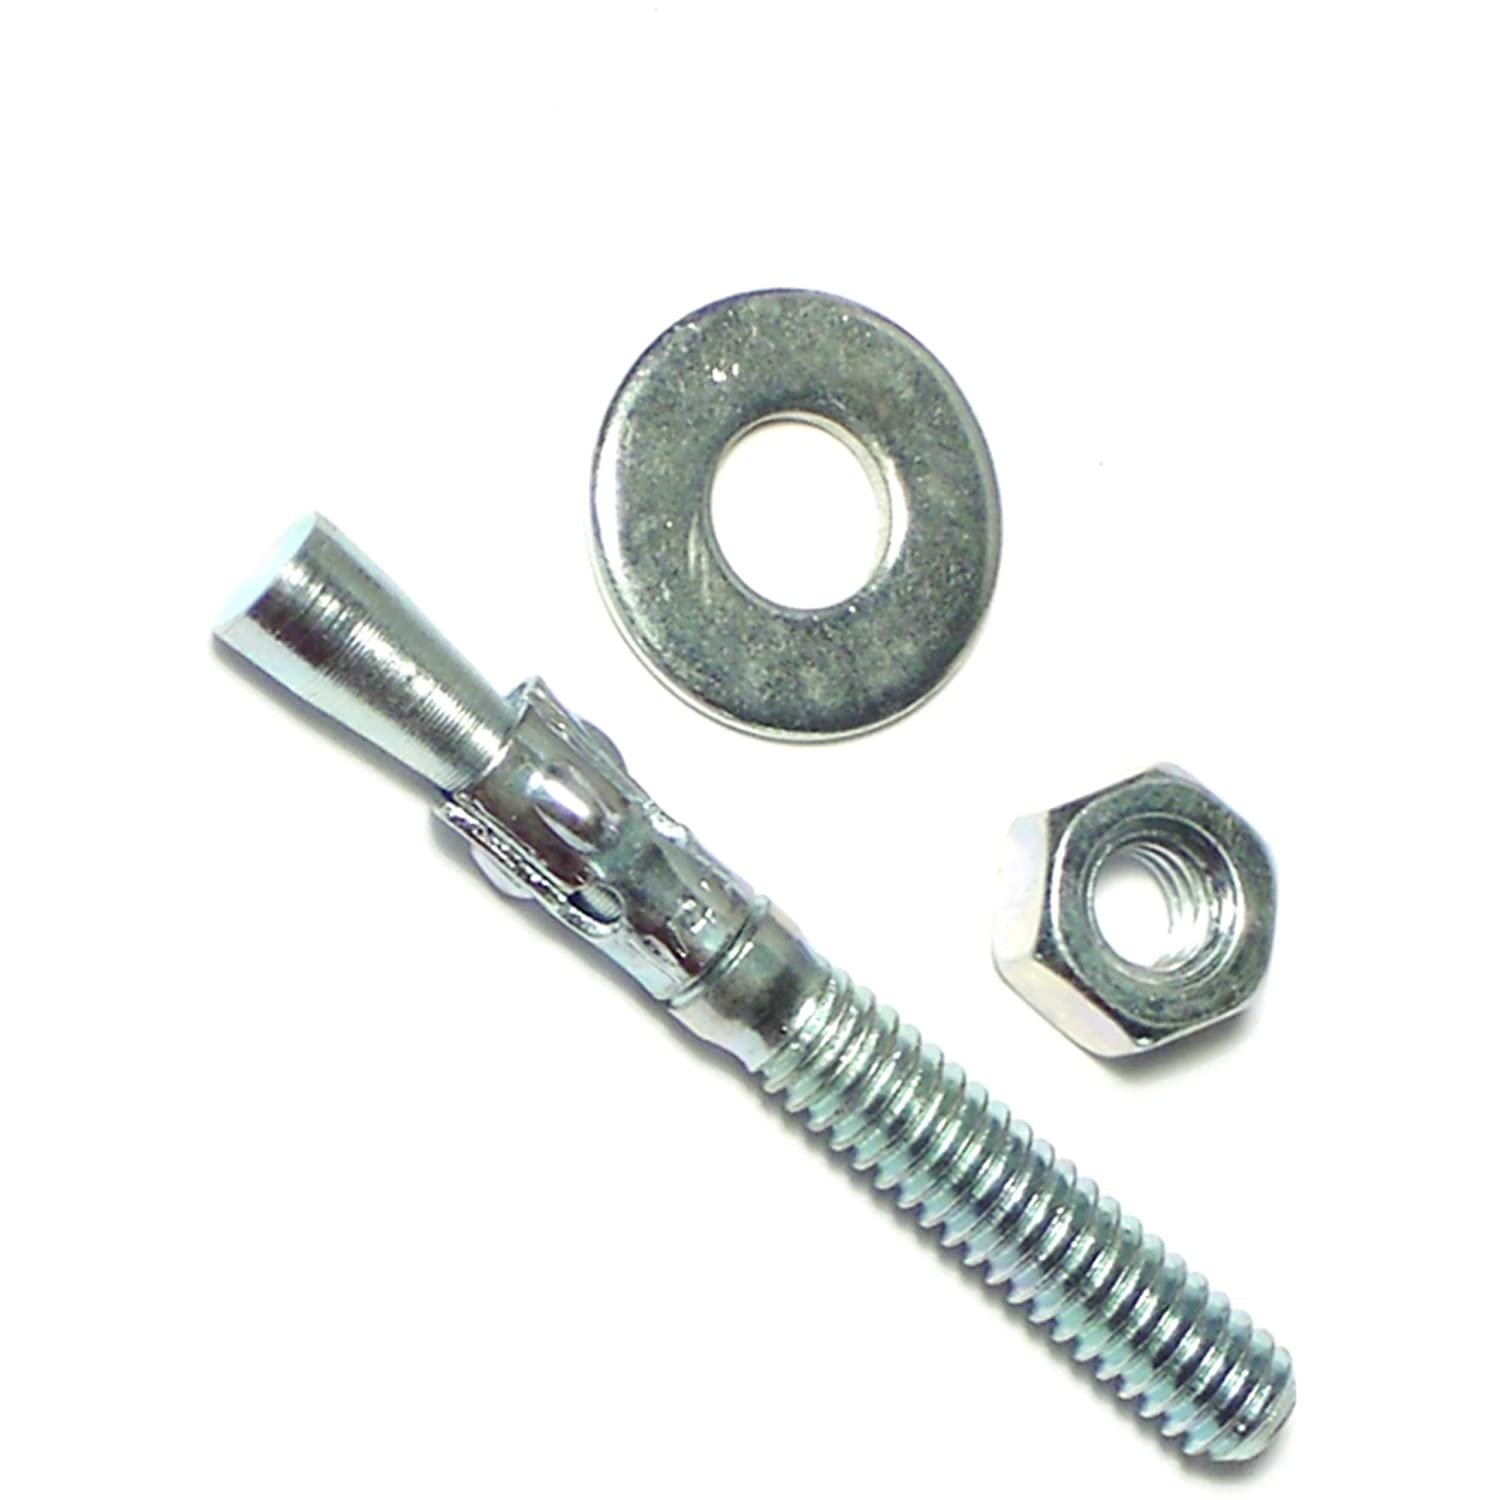 Hard-to-Find Fastener 014973237028 Concrete Wedge Anchors Piece-100 1//4 x 2-1//4